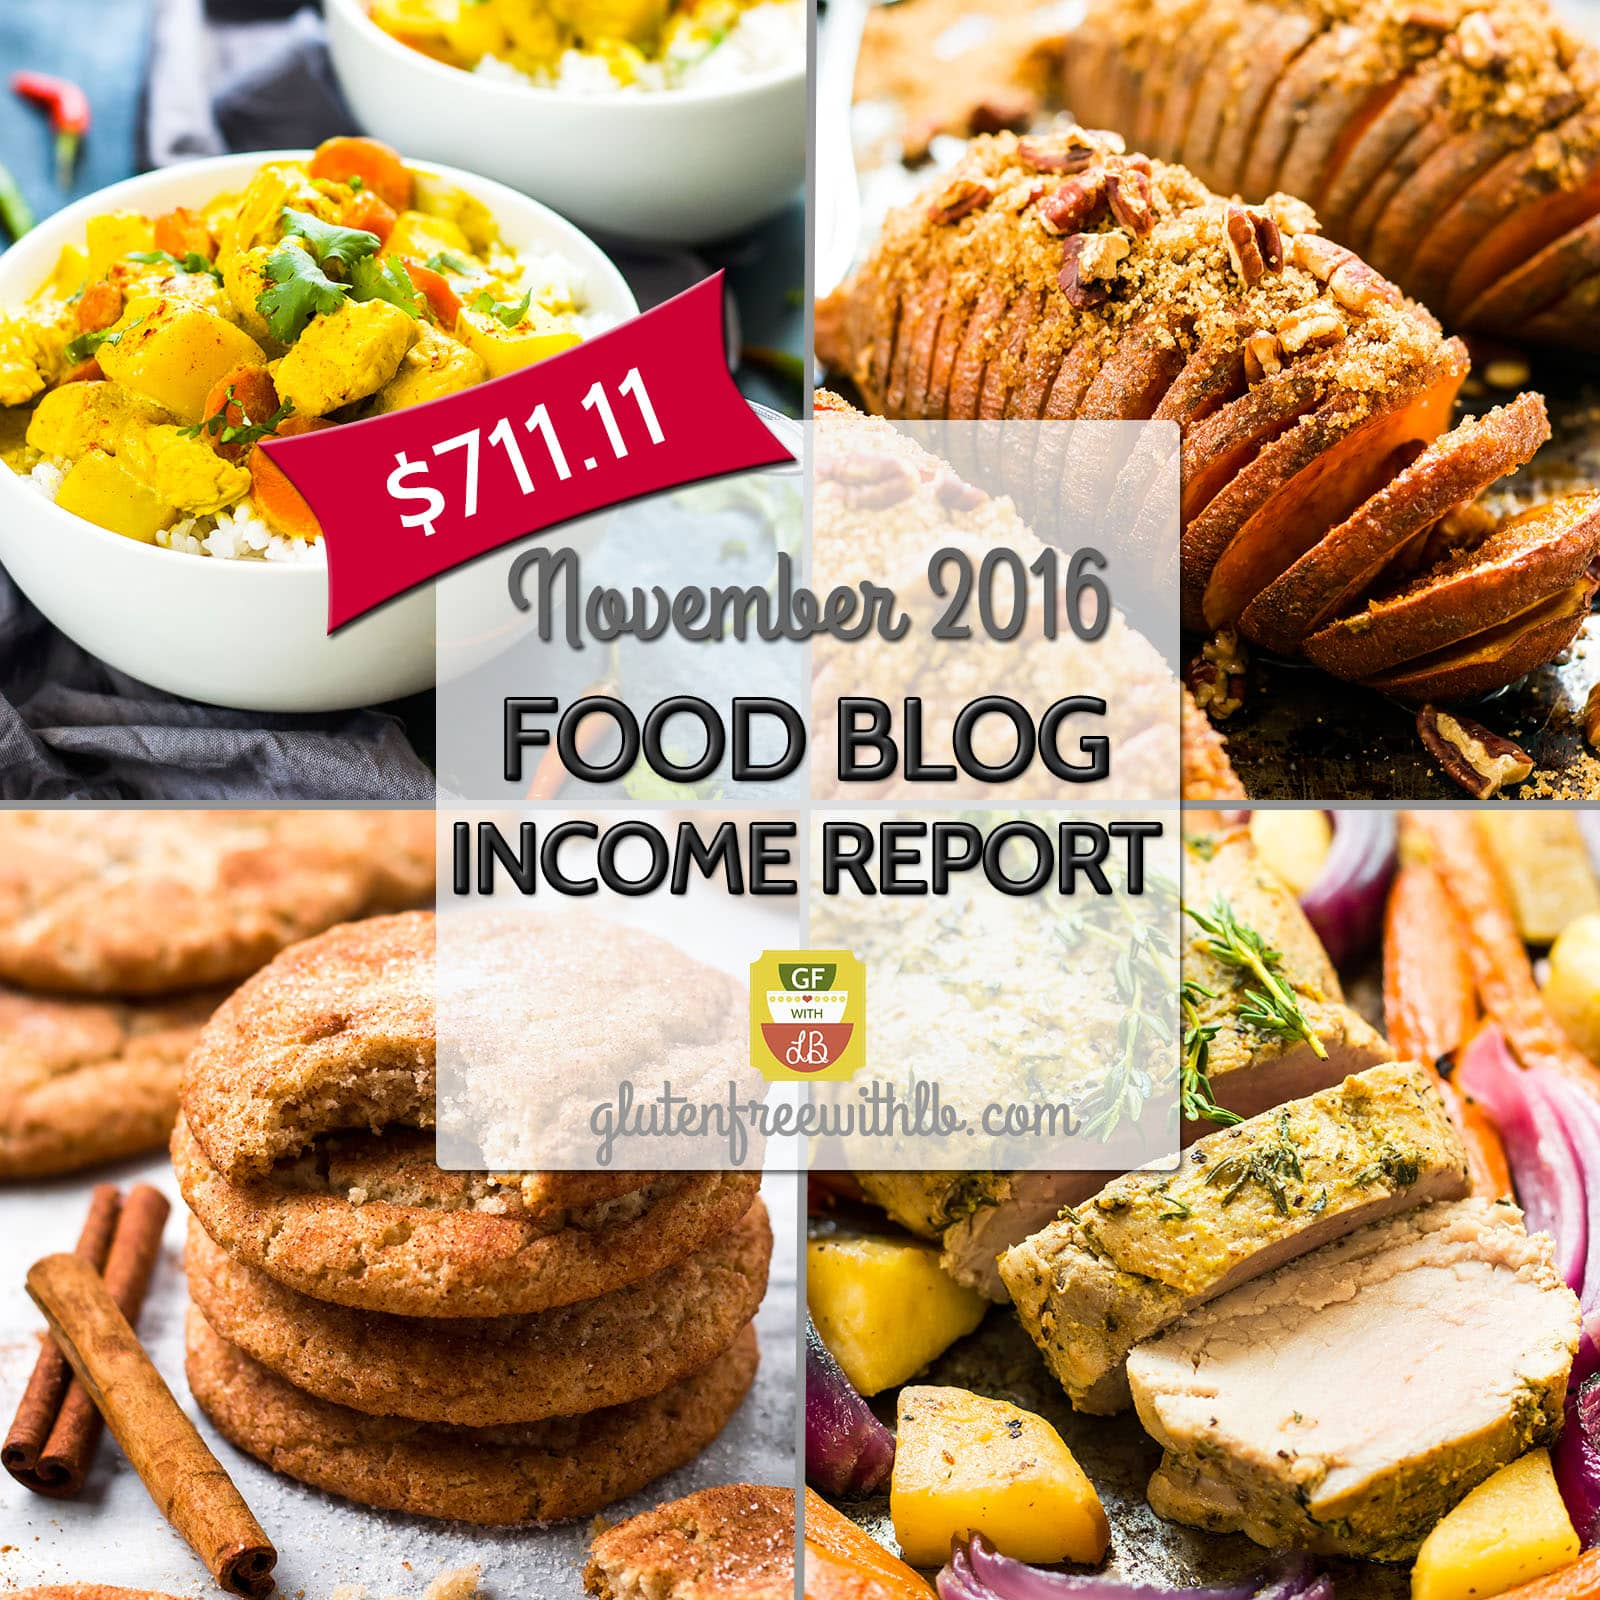 Food Blog Income Report for Gluten Free with L.B. | November 2016